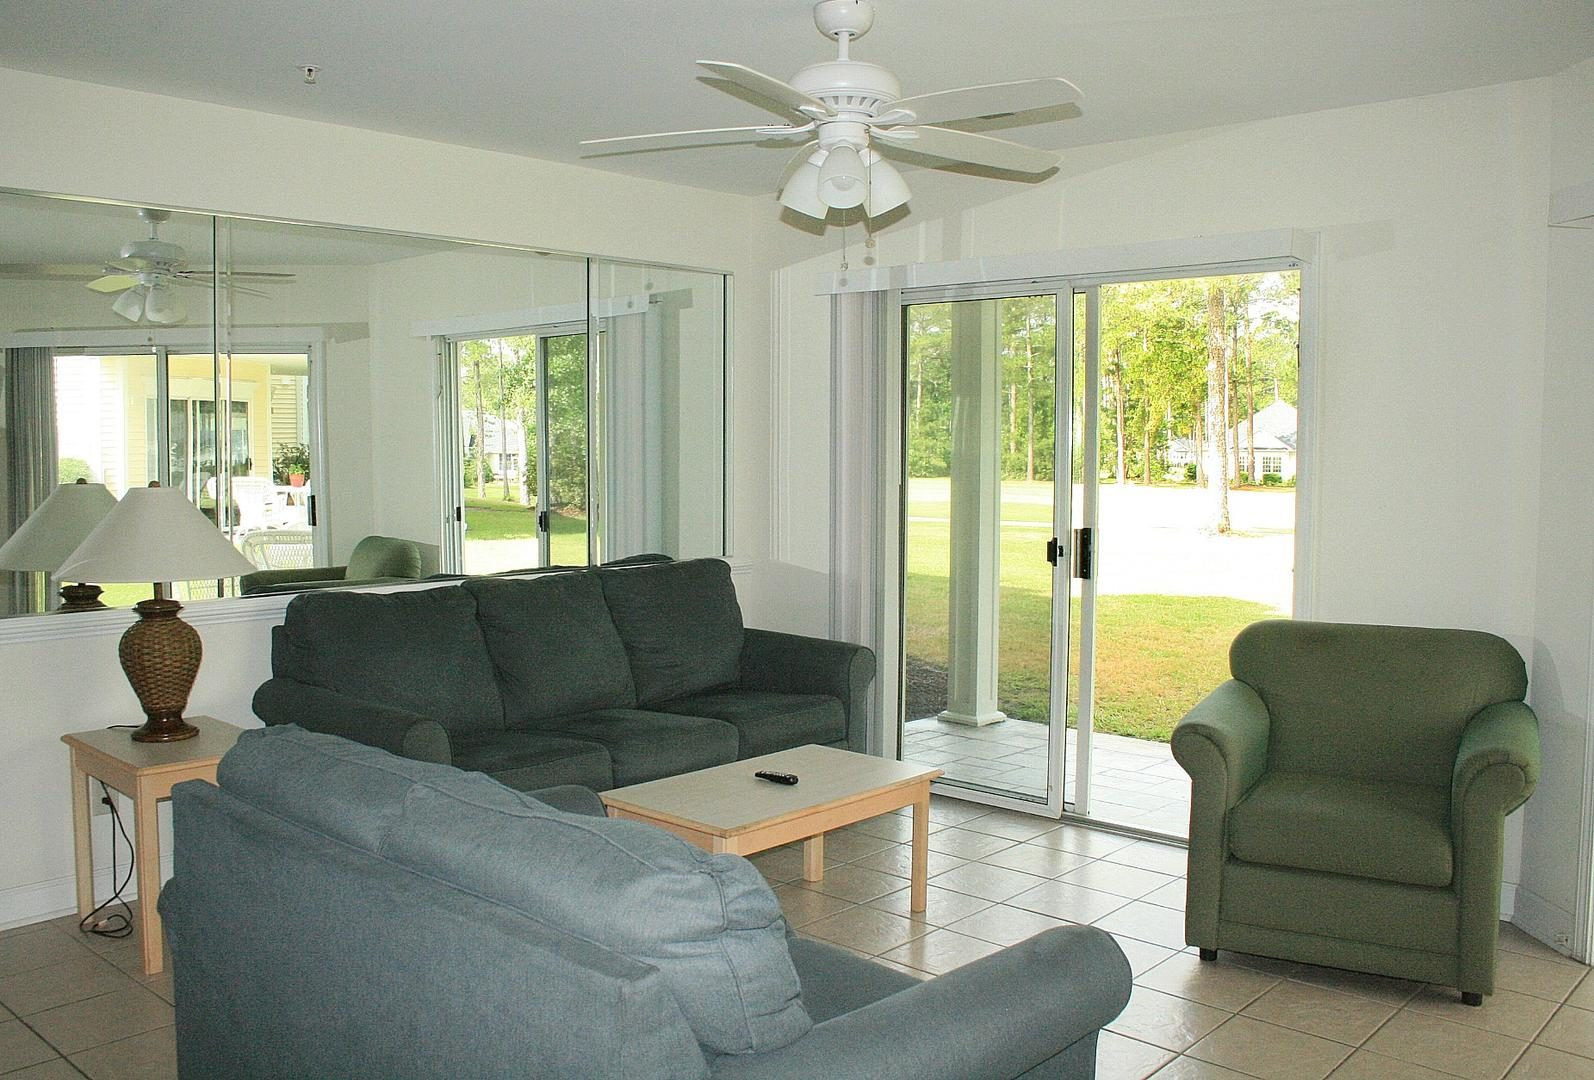 2303M 1 Bedroom/1 Bath Villa